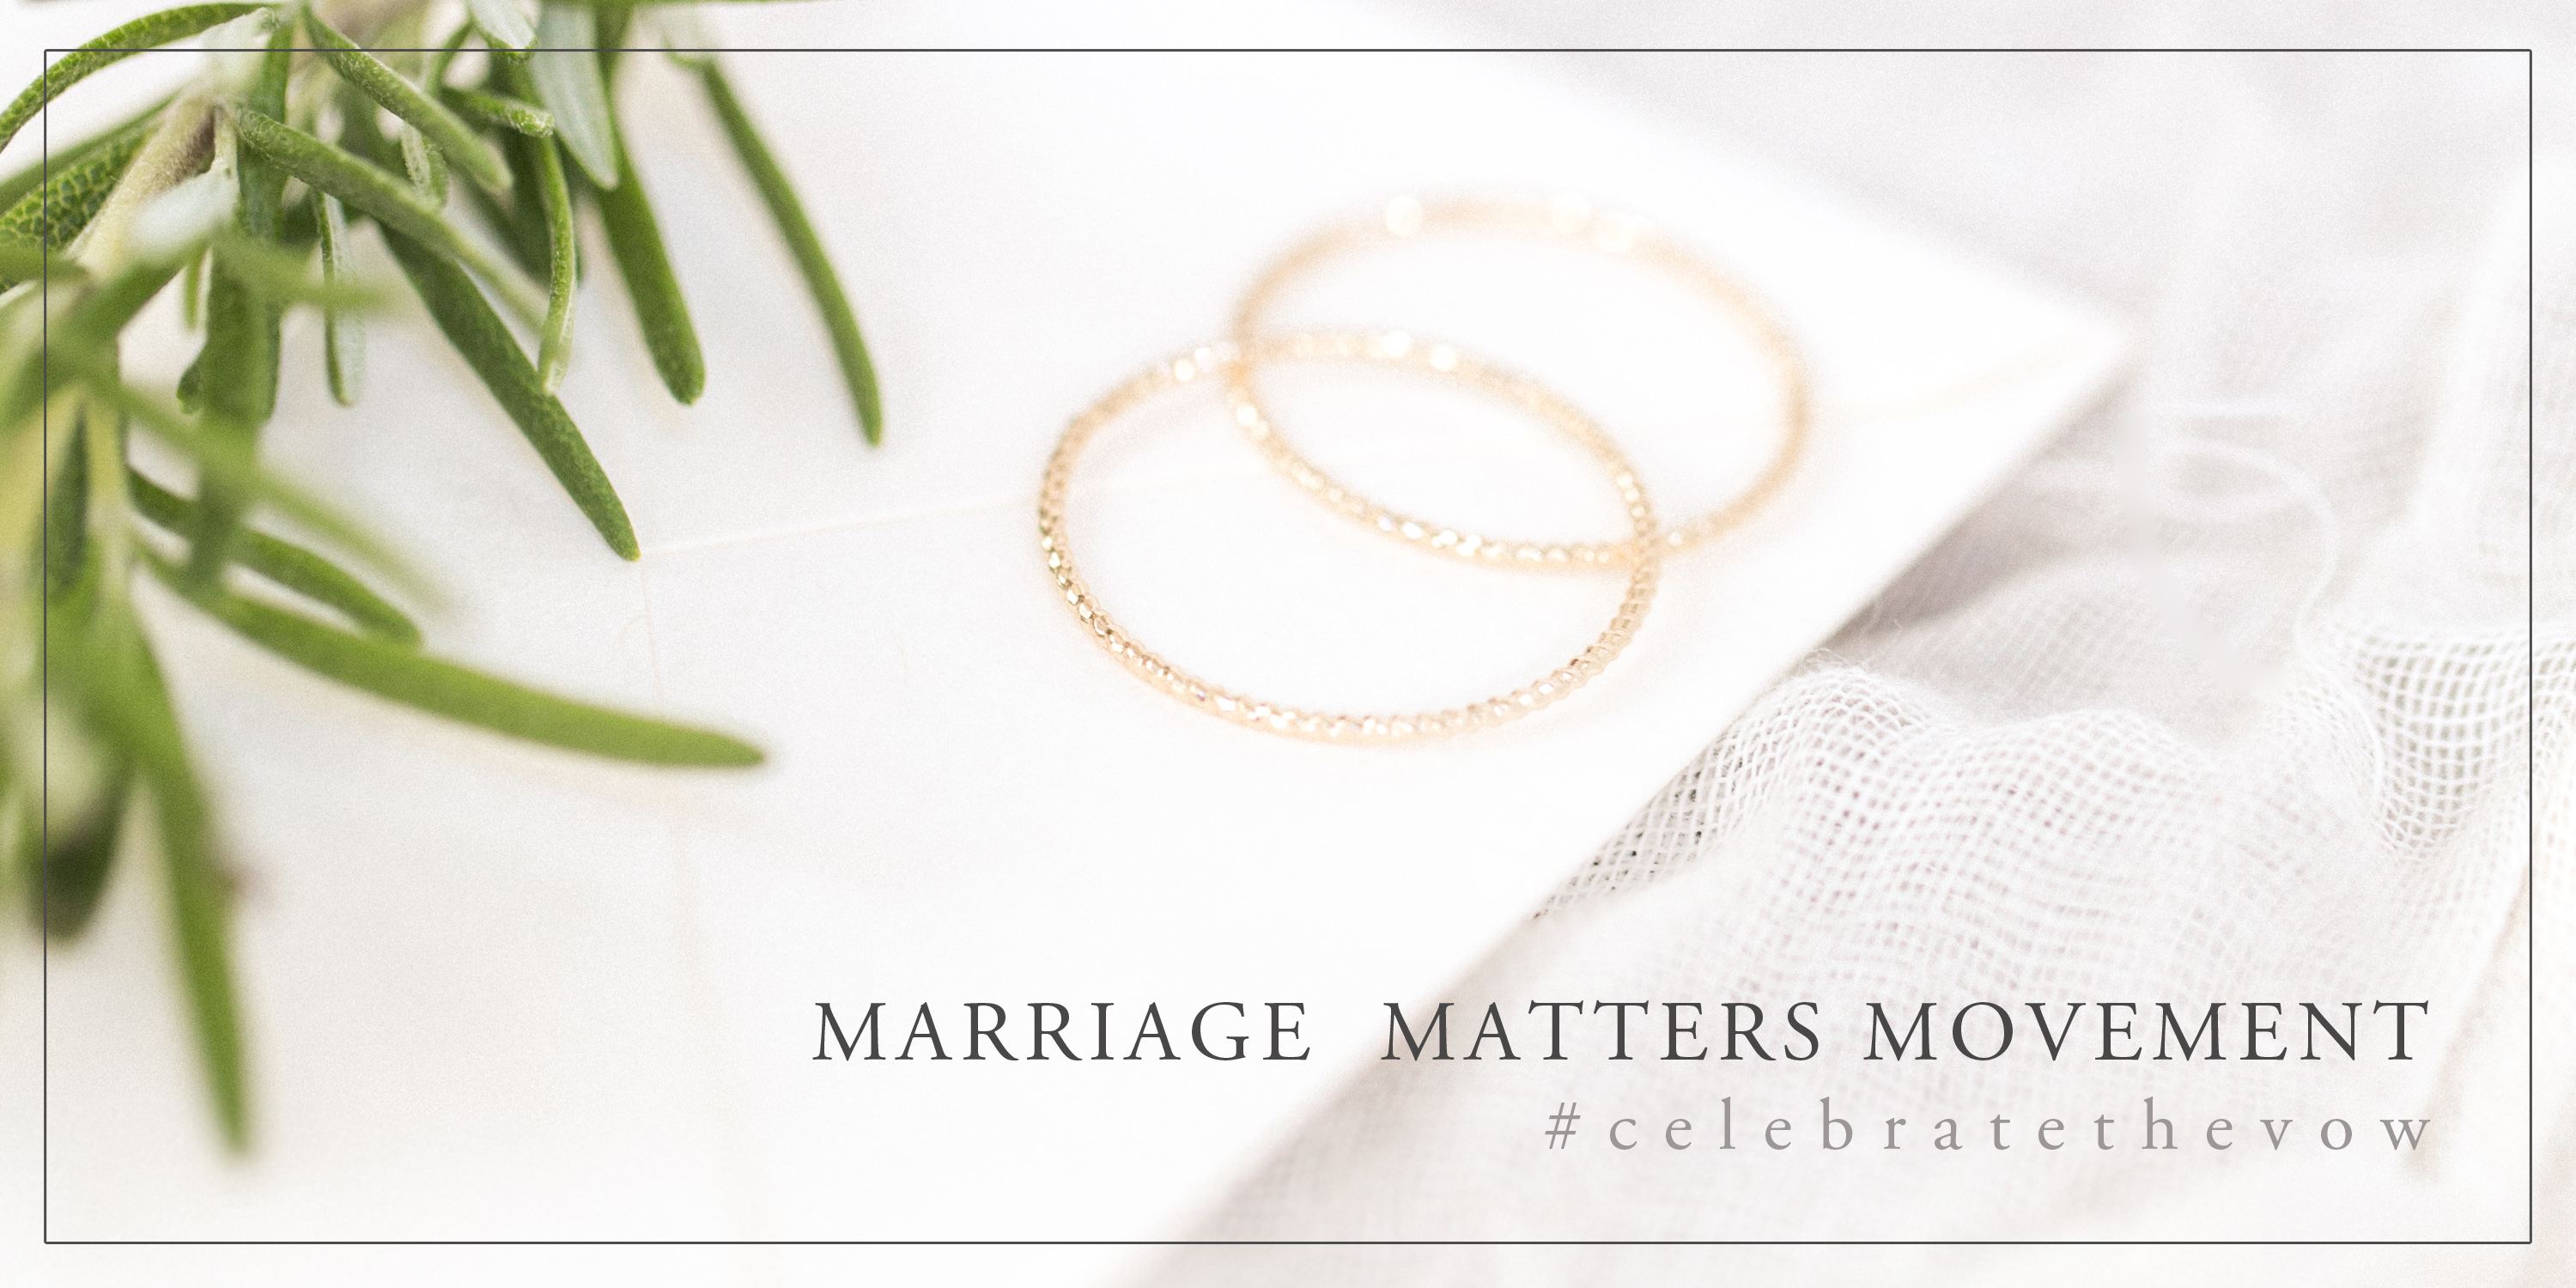 fine art marriage matters movement, celebrate the vow